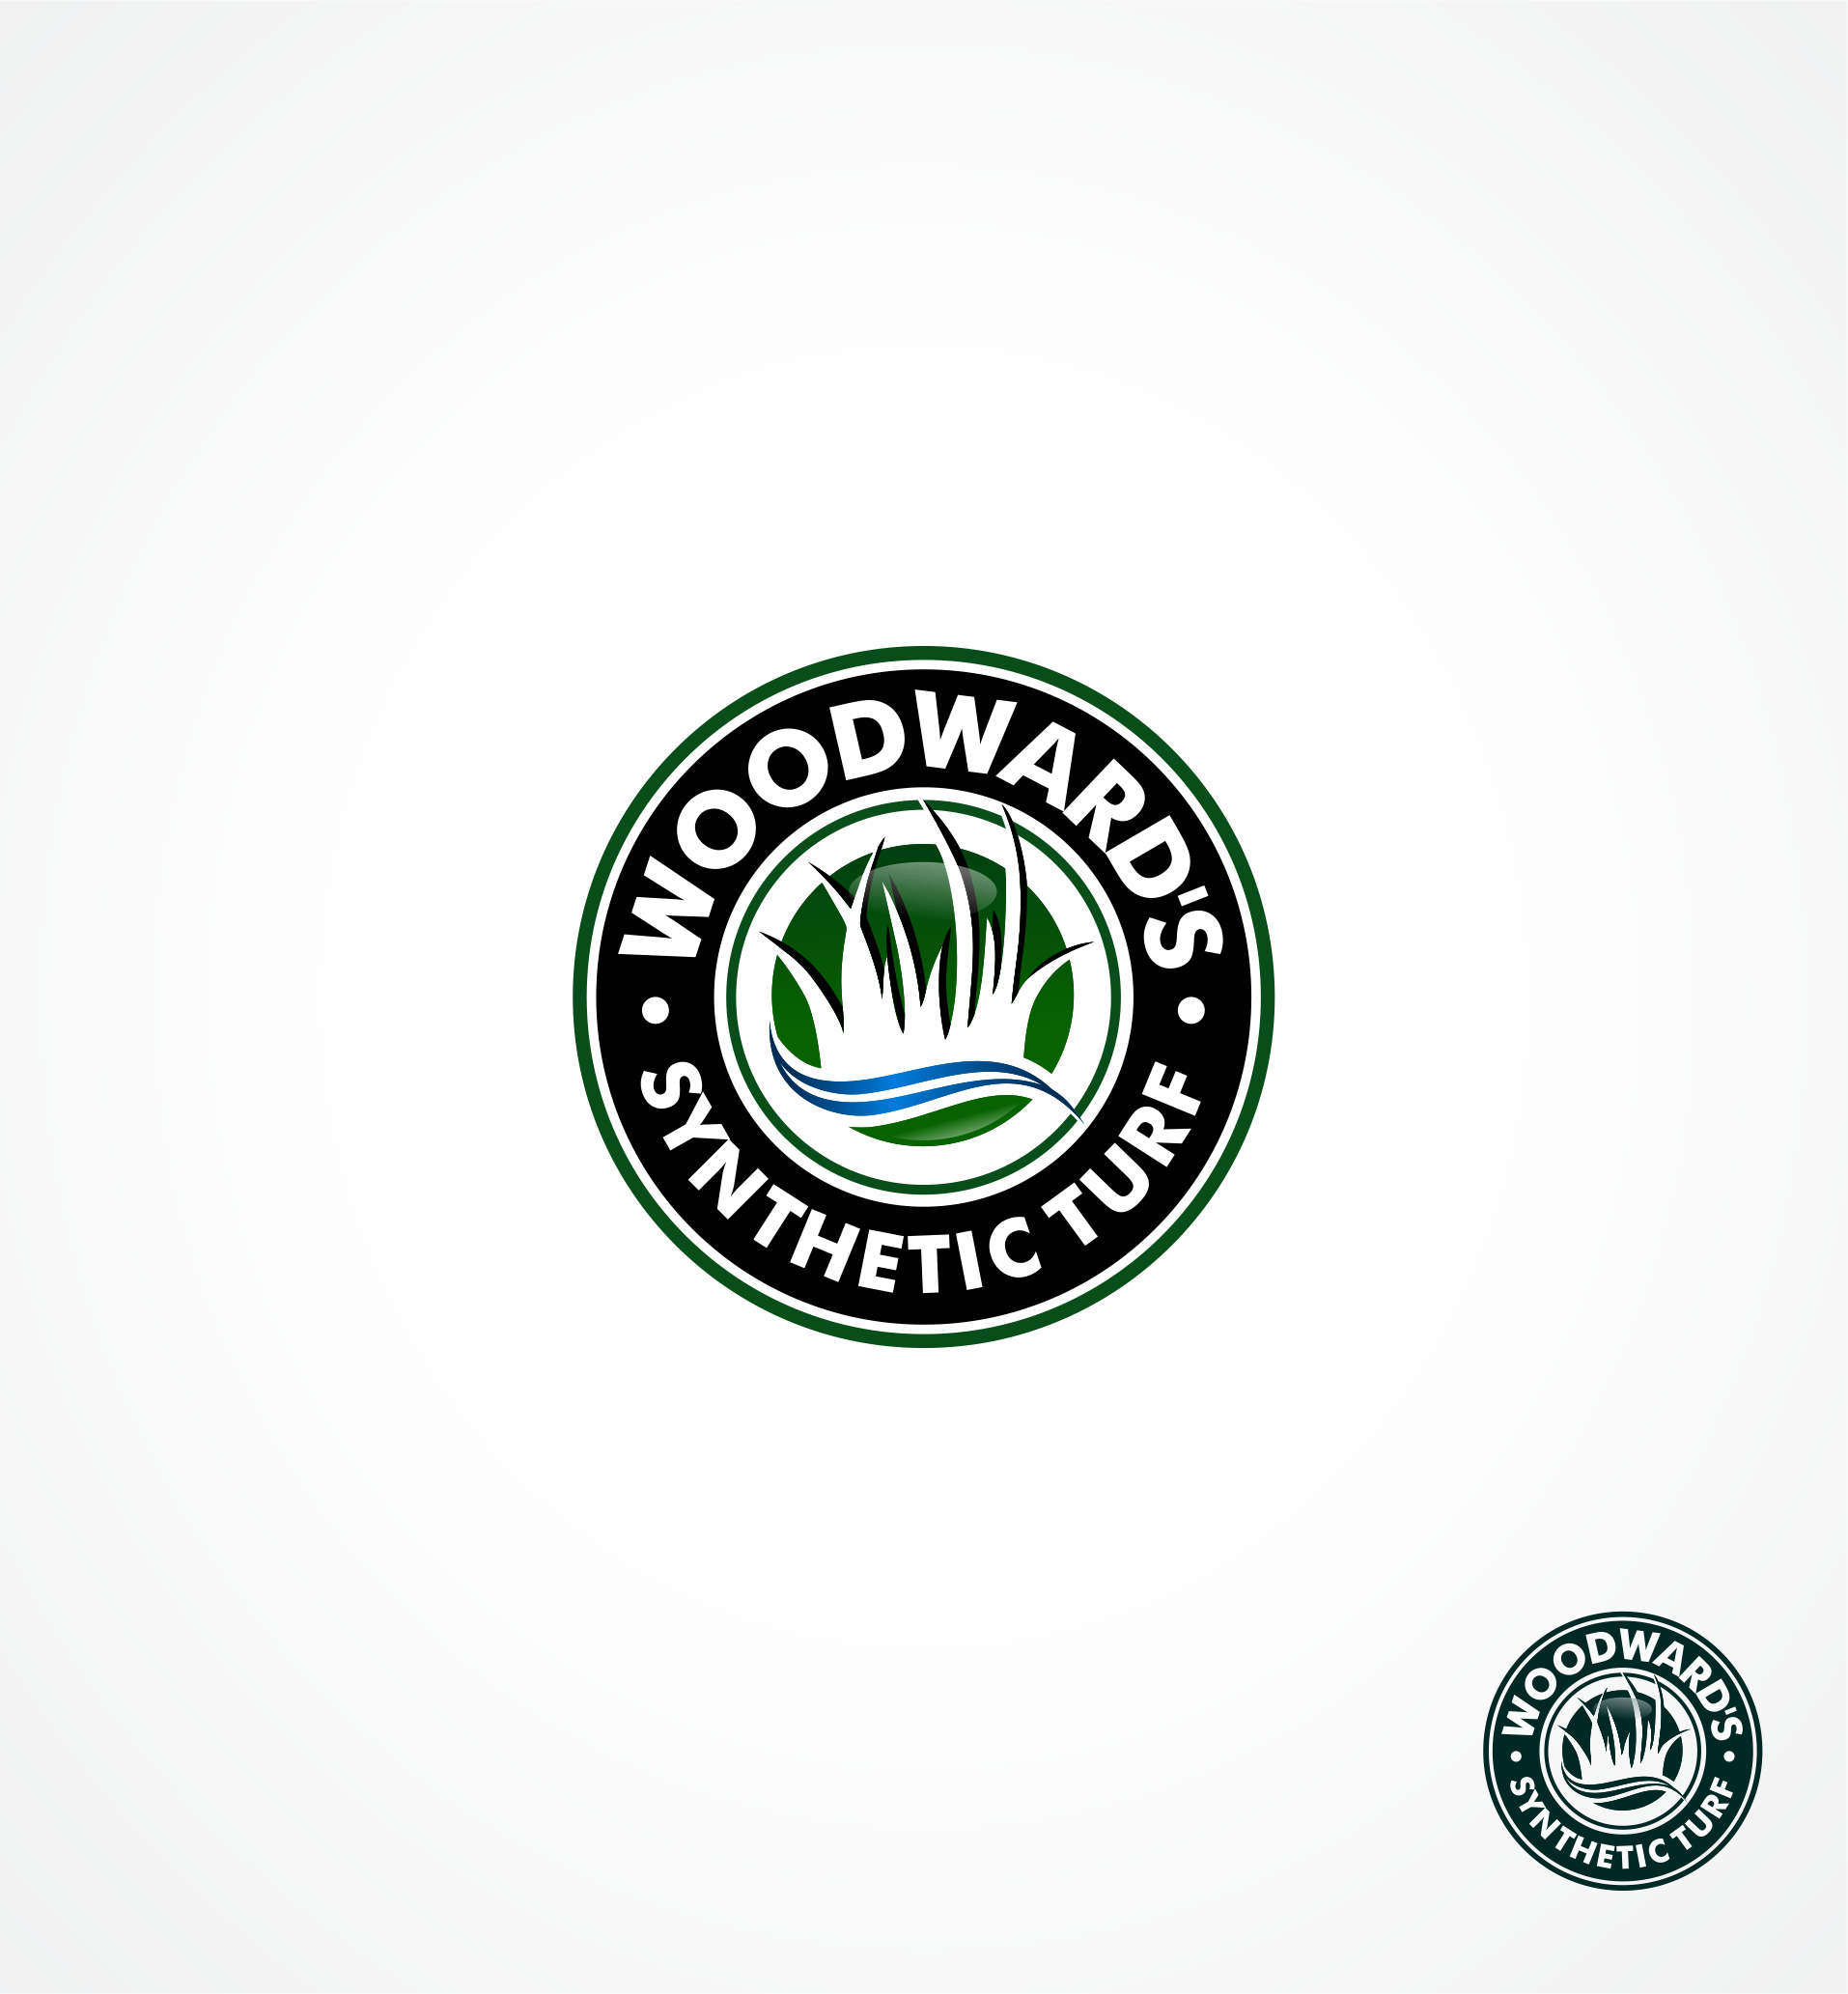 Logo Design by Raymond Garcia - Entry No. 38 in the Logo Design Contest Artistic Logo Design for Woodward's Synthetic Turf.